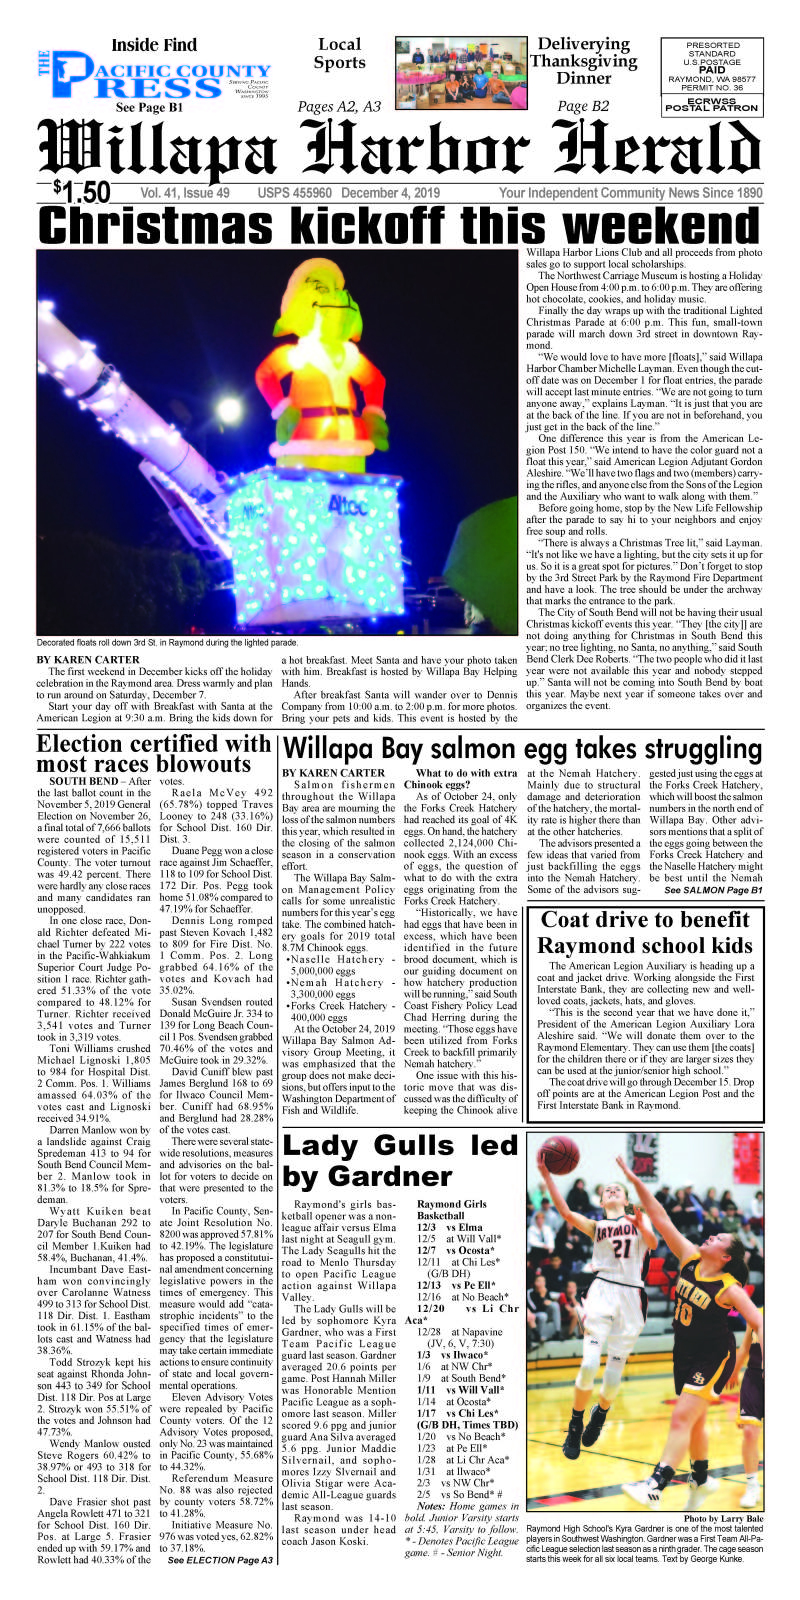 December 4, 2019 Willapa Harbor Herald and Pacific County Press